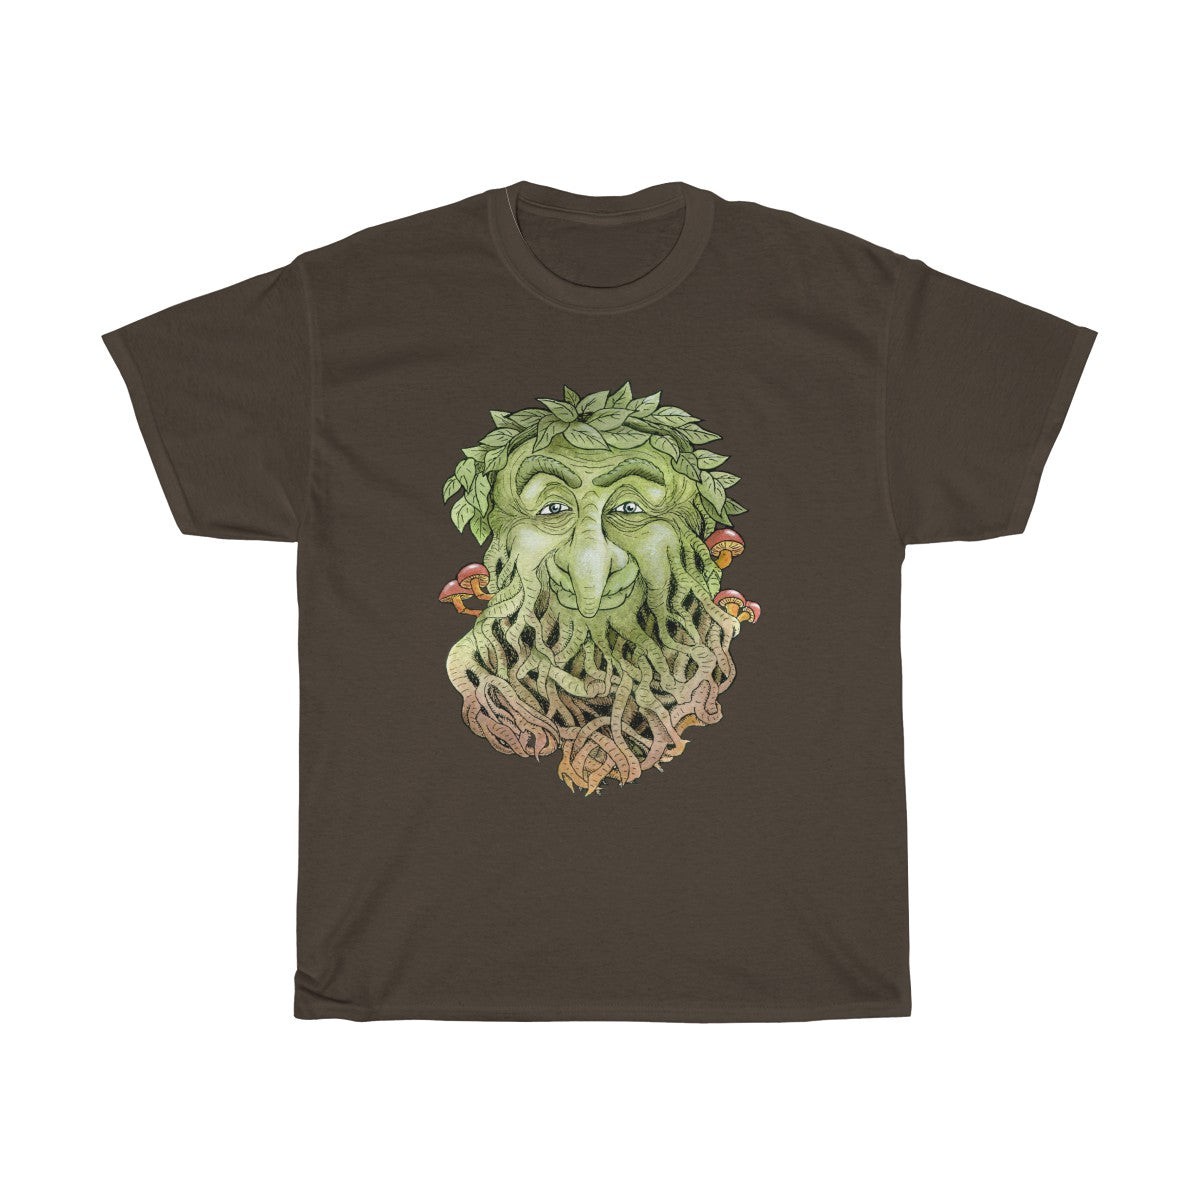 Greenman Unisex Heavy Cotton Tee Dark Chocolate Color